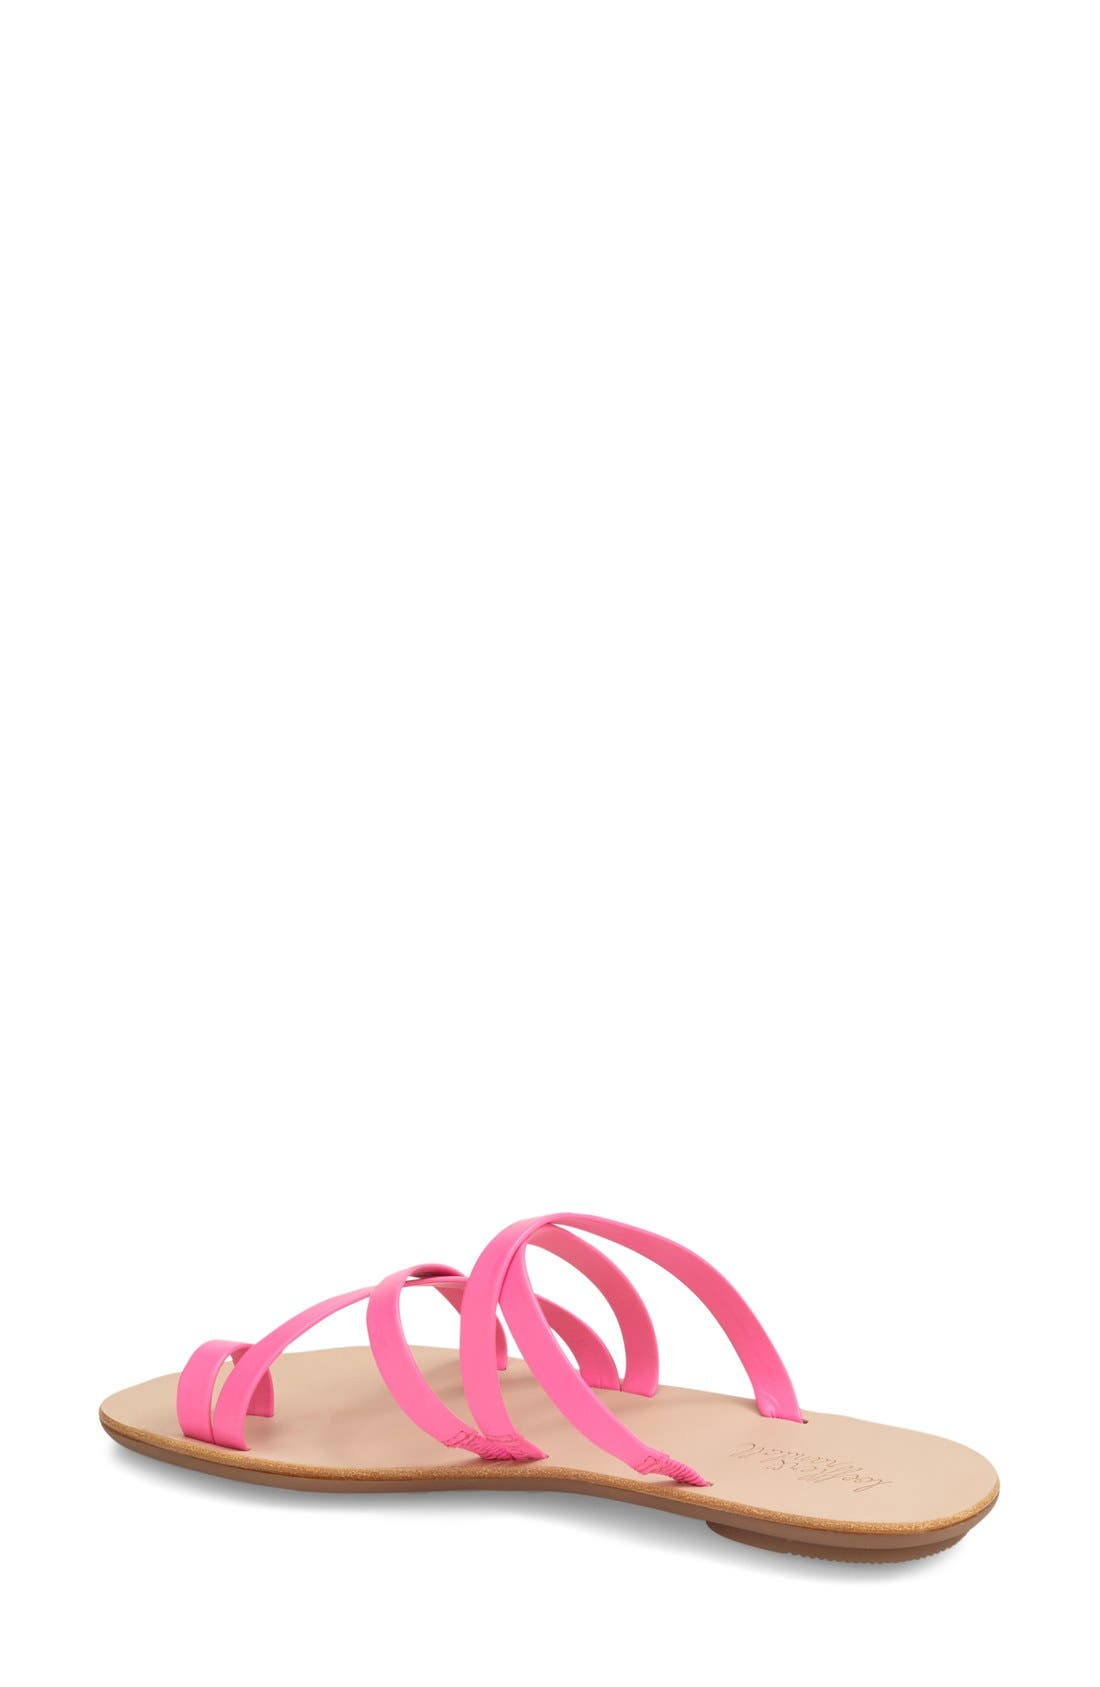 'Sarie' Strappy Flat Sandal,                             Alternate thumbnail 2, color,                             690